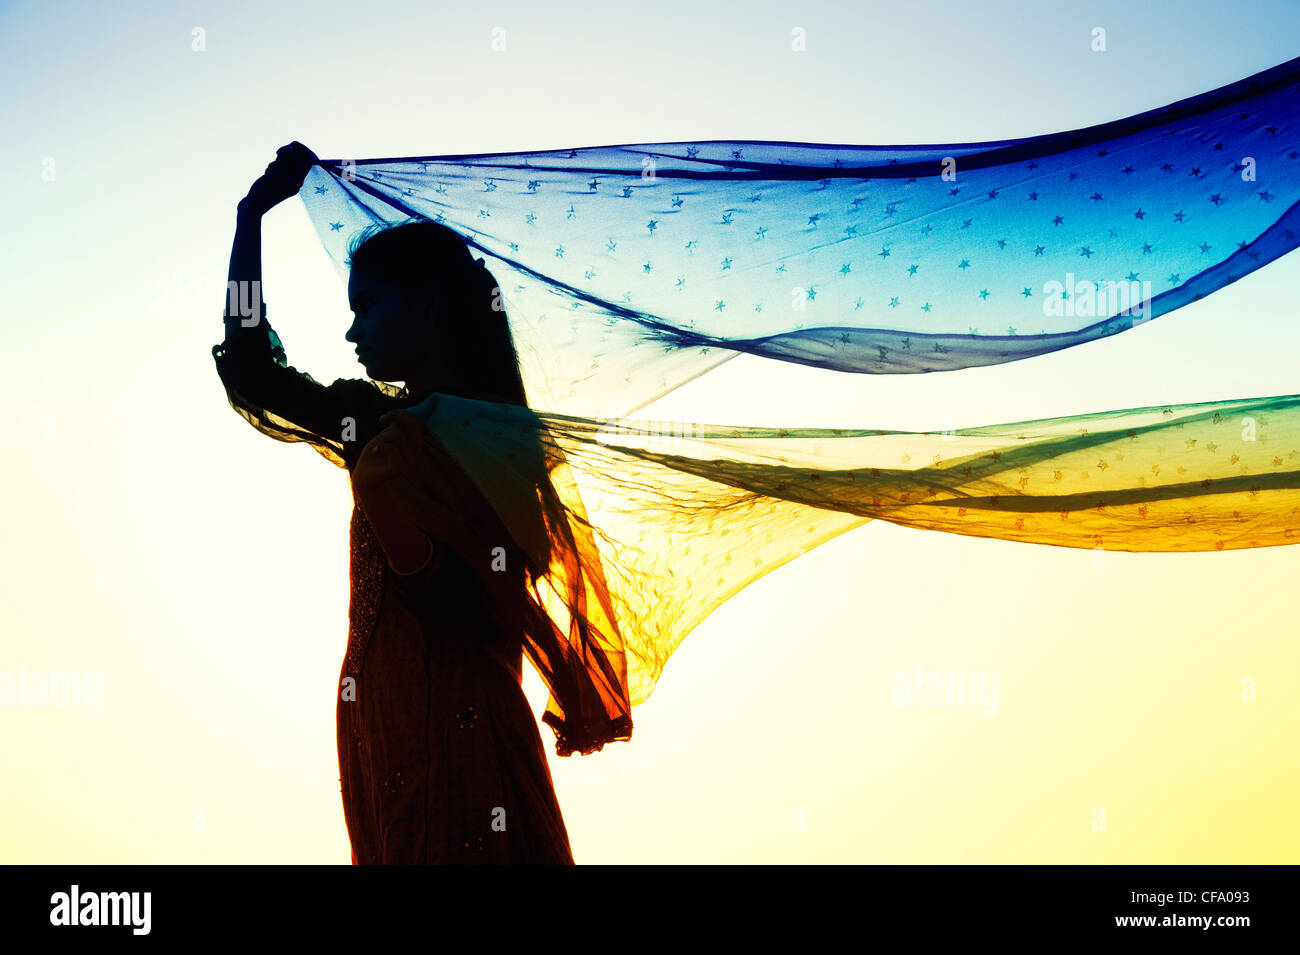 Indian girl with star patterned veils in the wind. Silhouette - Stock Image